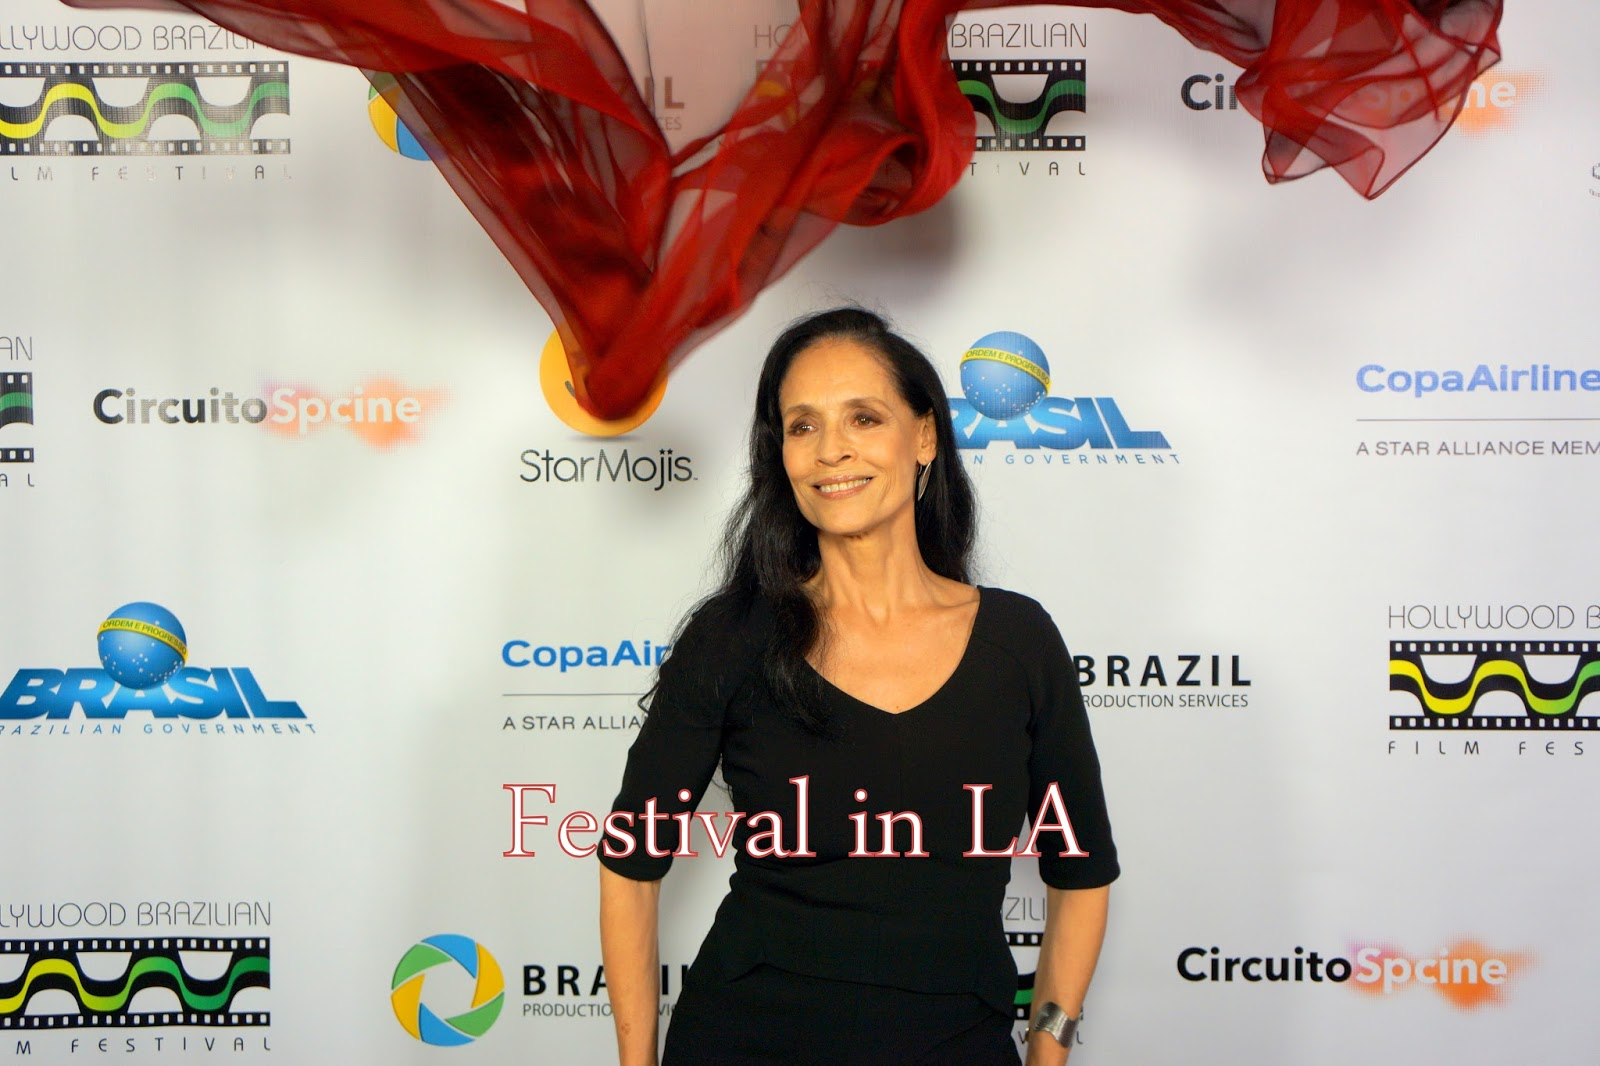 Circuito Sp Cine : Festival in la: sonia braga receives a lifetime achievement award in